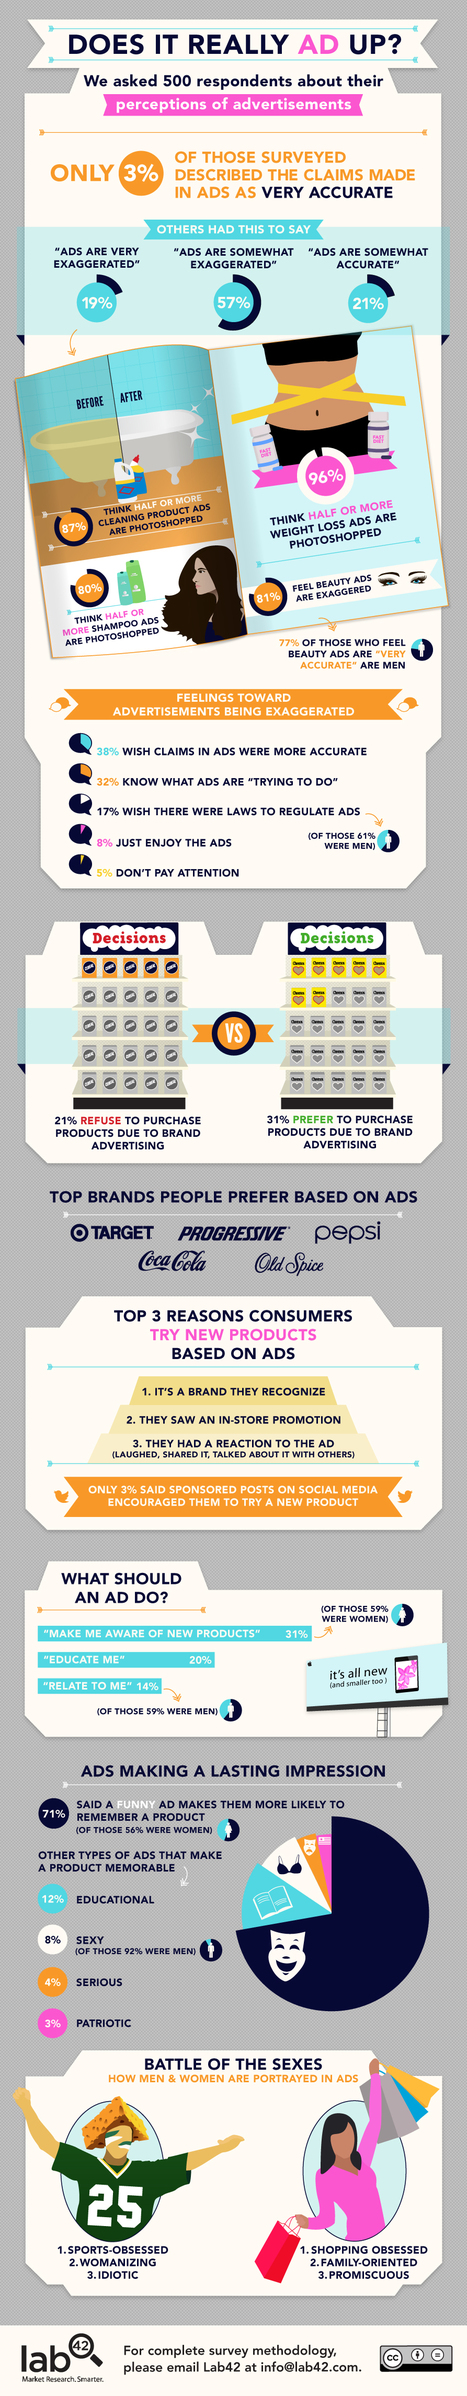 Does Anyone Really Believe Advertising Any More? [INFOGRAPHIC] | Marketing Education | Scoop.it